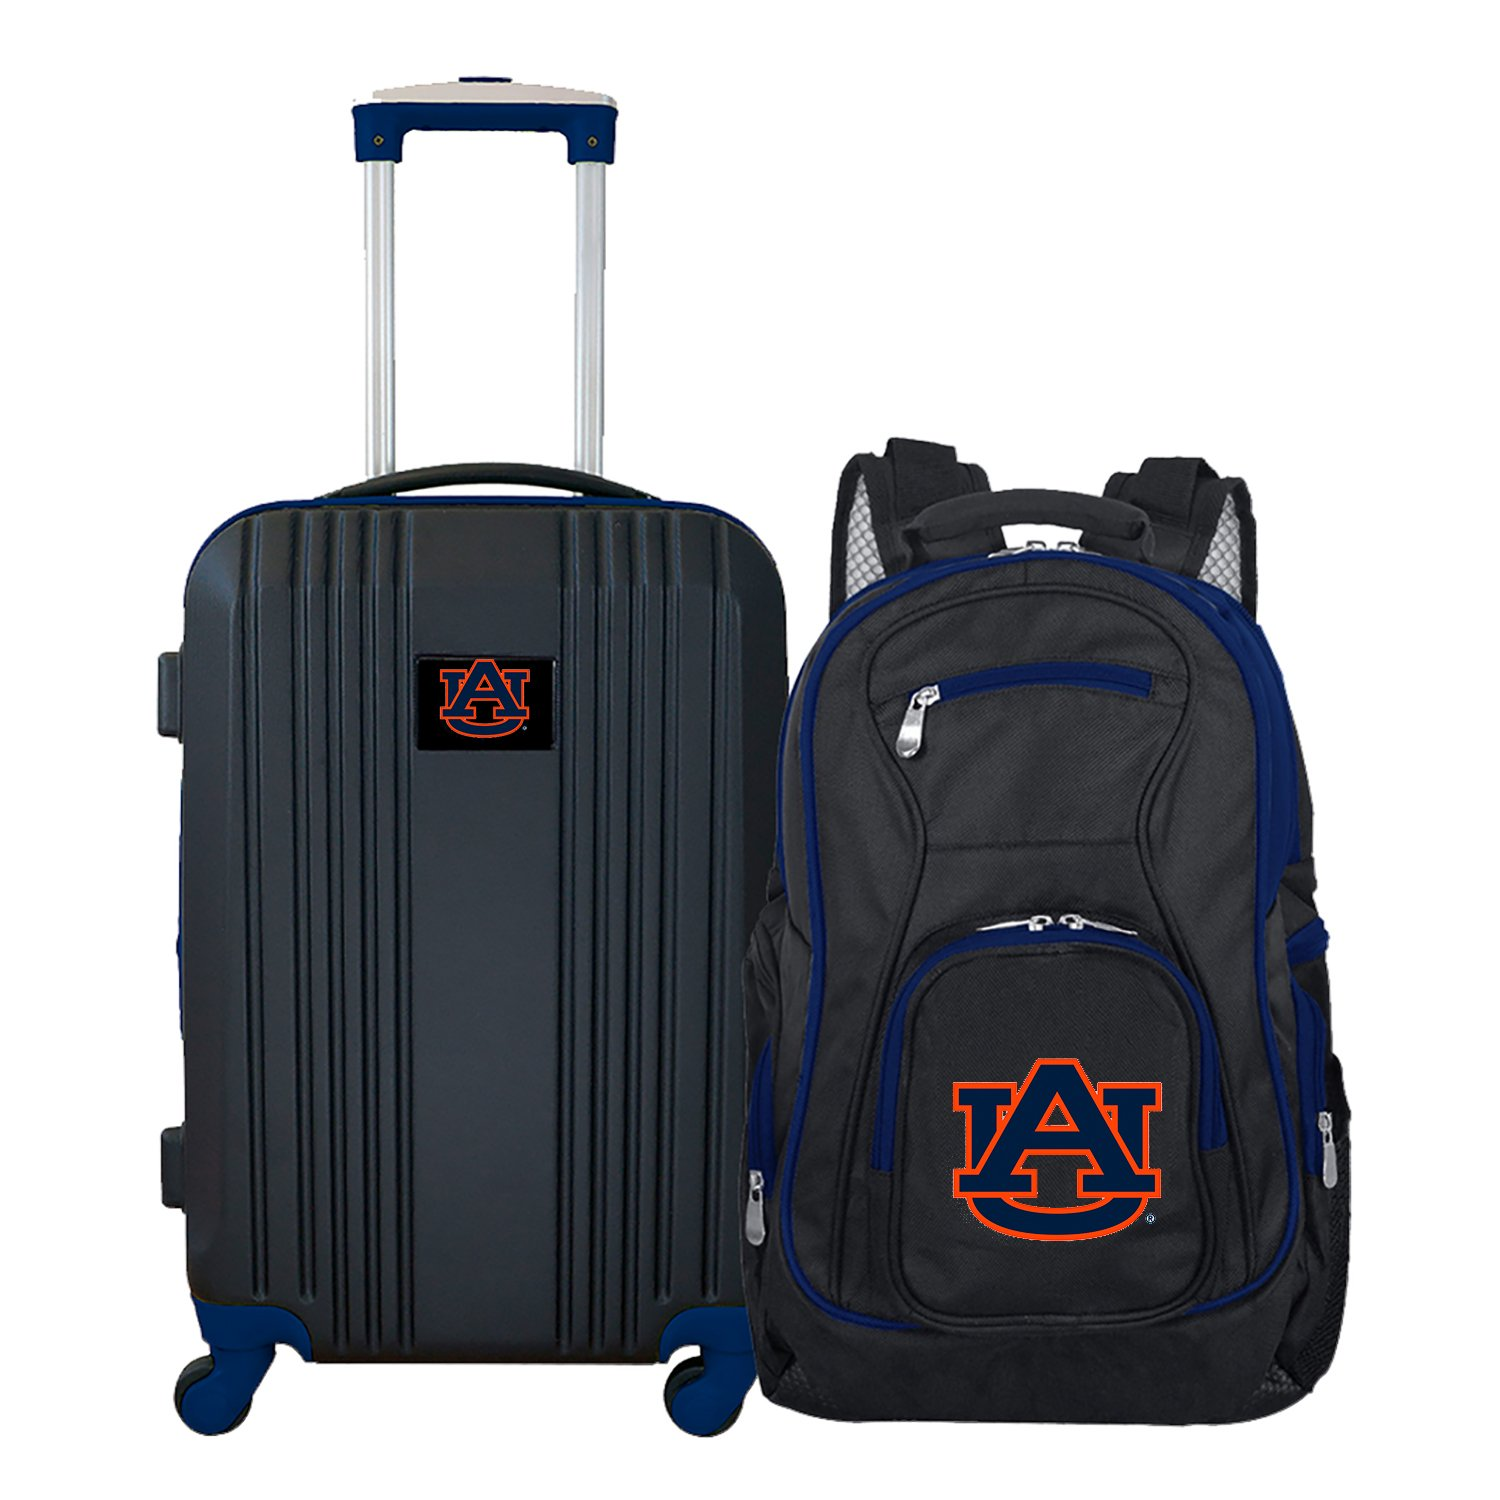 NCAA Auburn Tigers 2-Piece Luggage Set